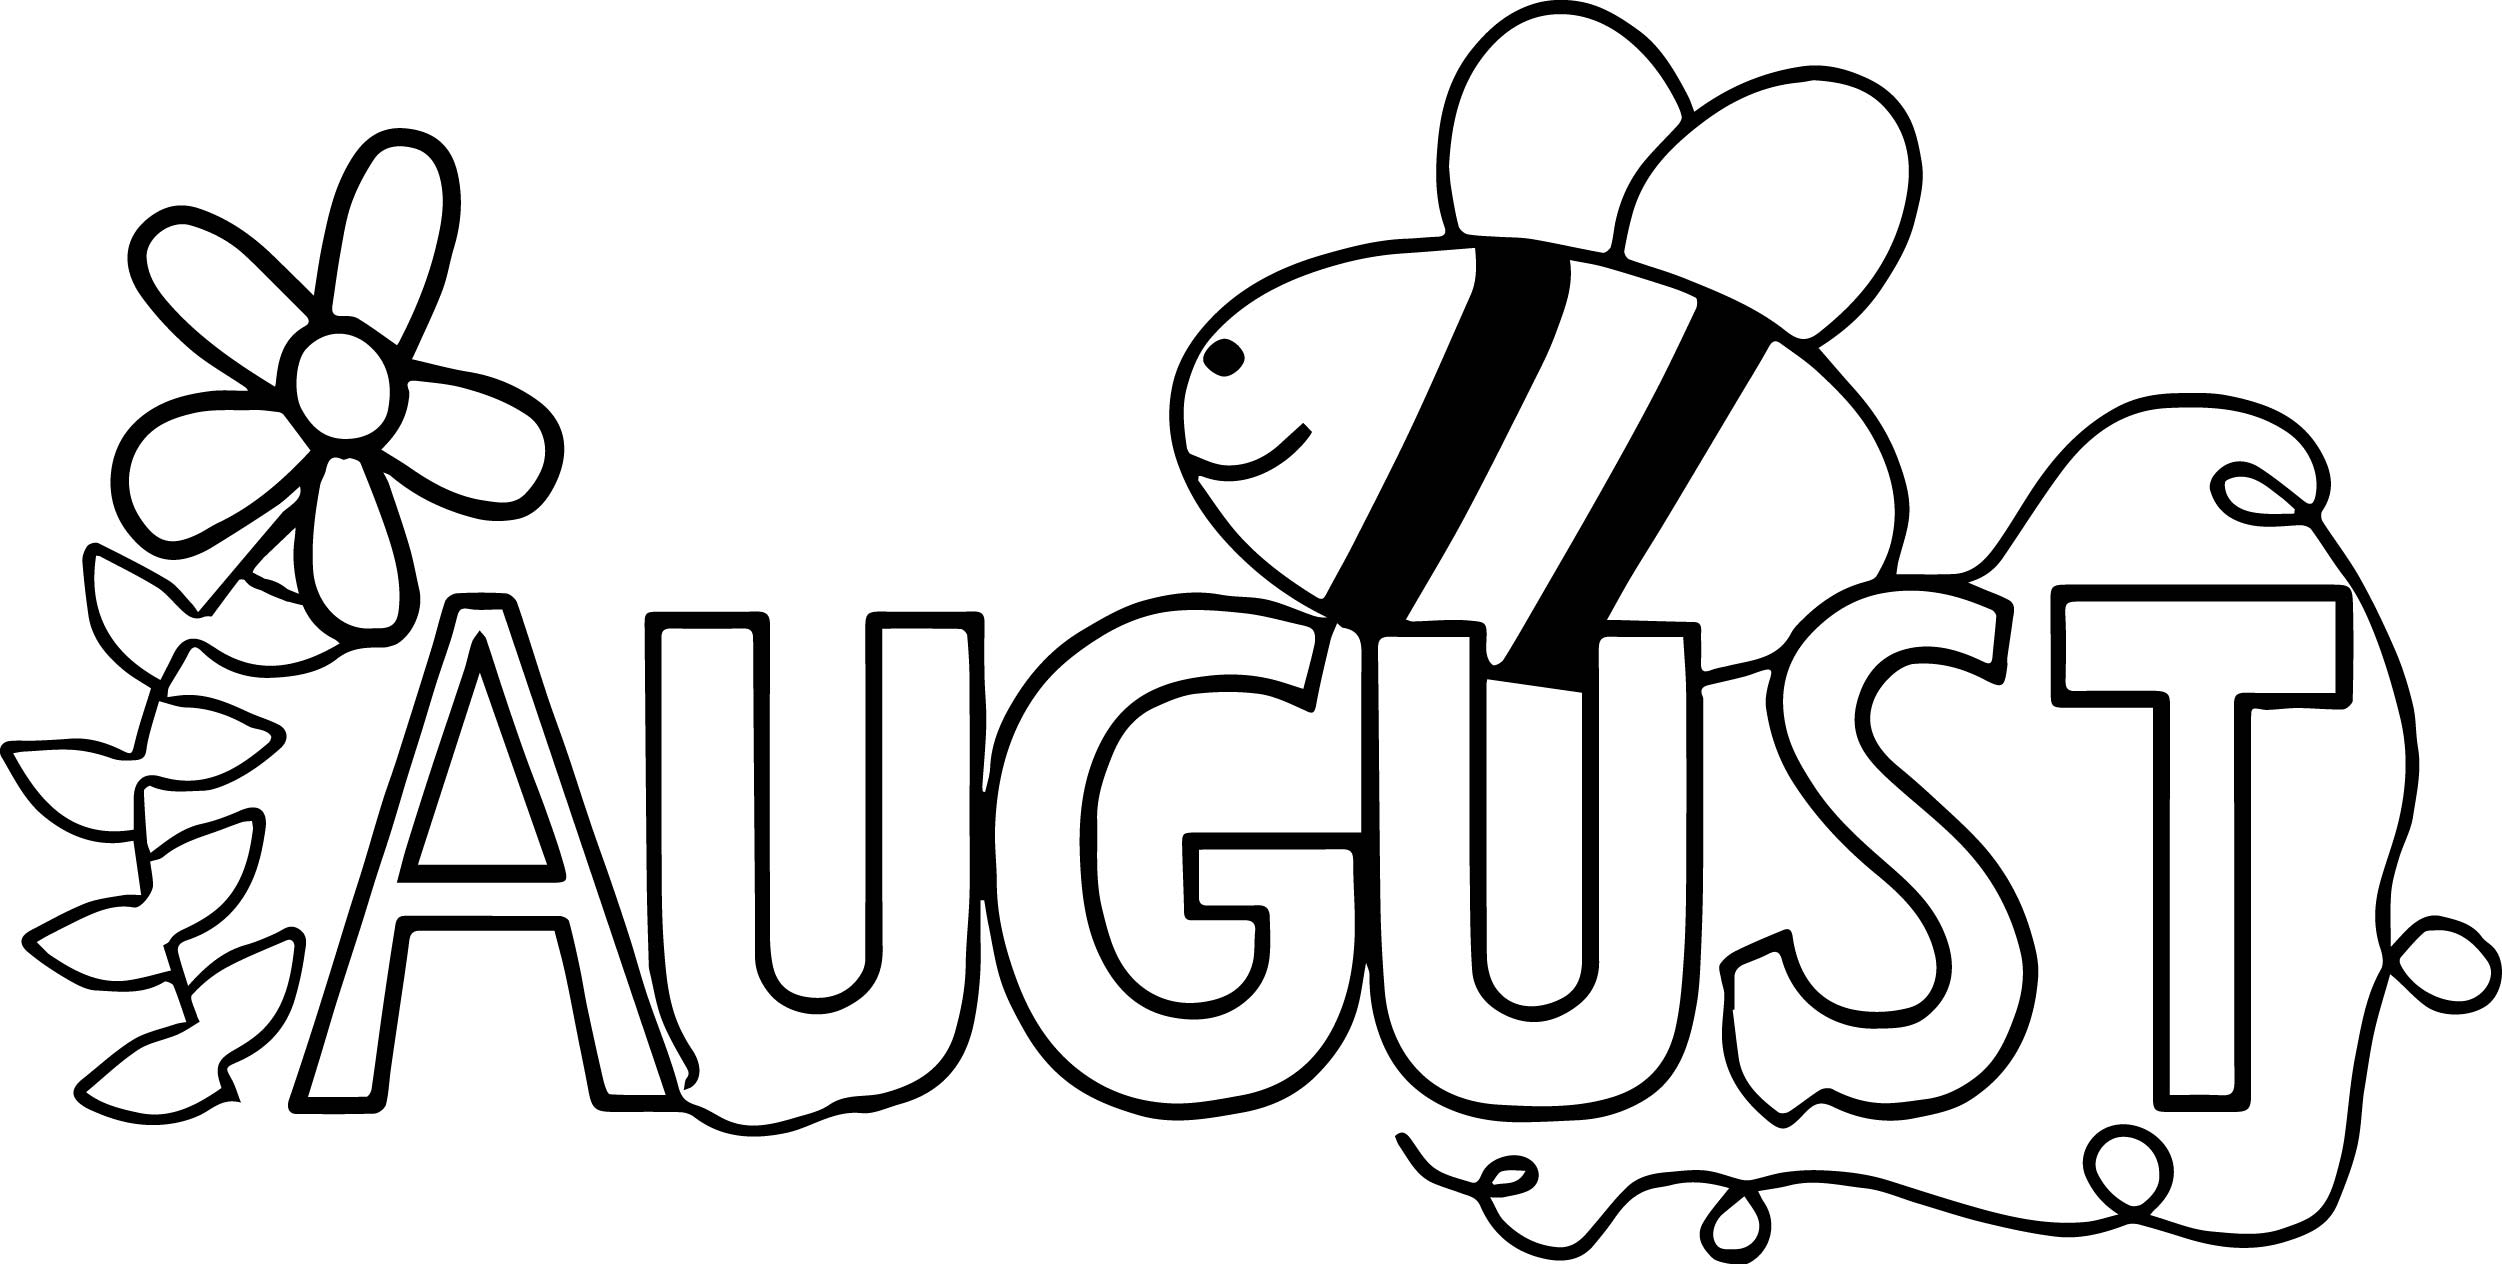 Summer August Bee Coloring Page